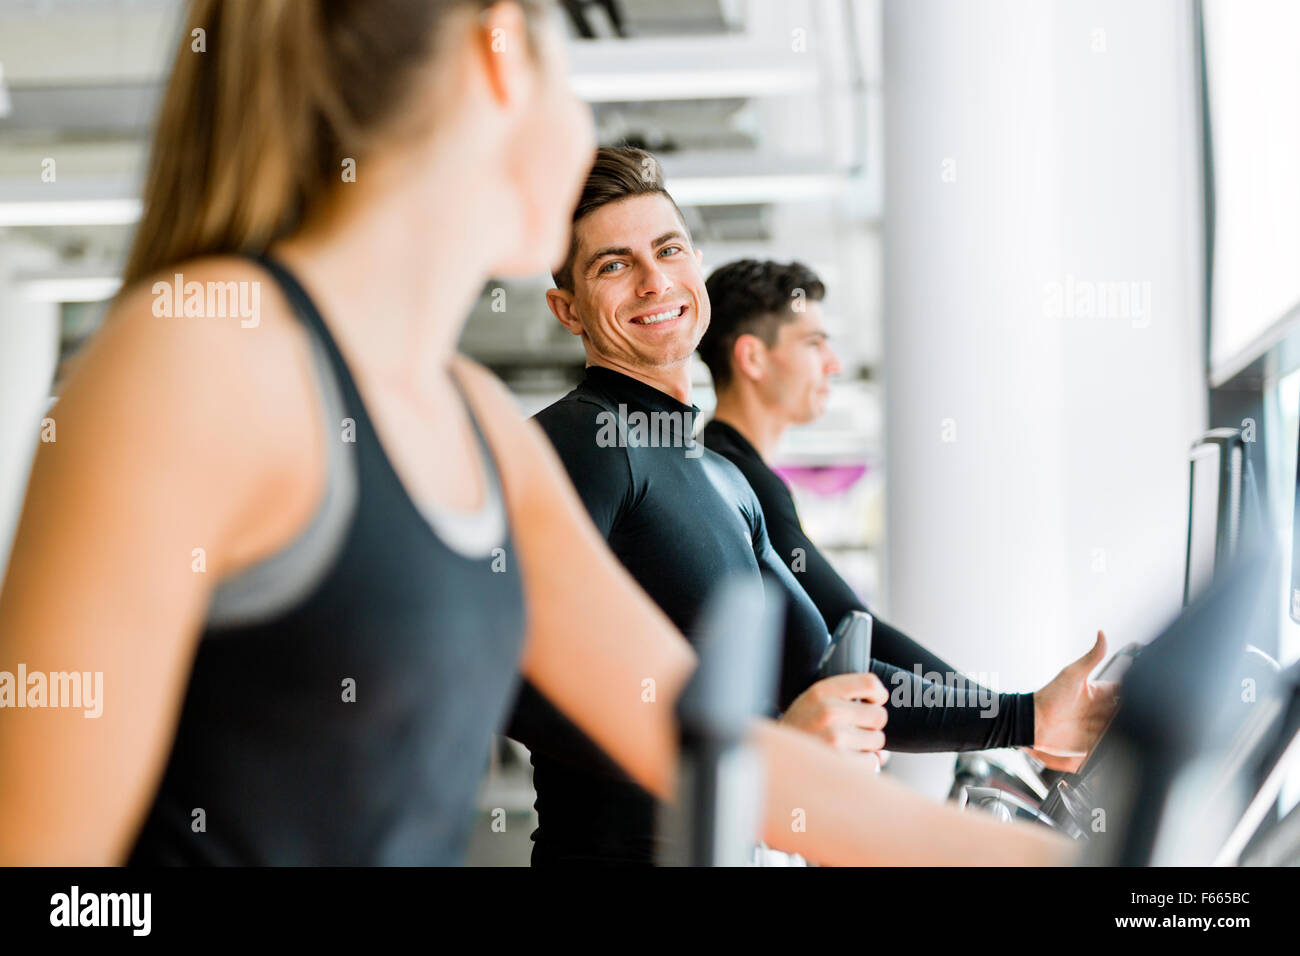 Handsome man and beautiful young woman using a stepper in a gym and having a conversation - Stock Image